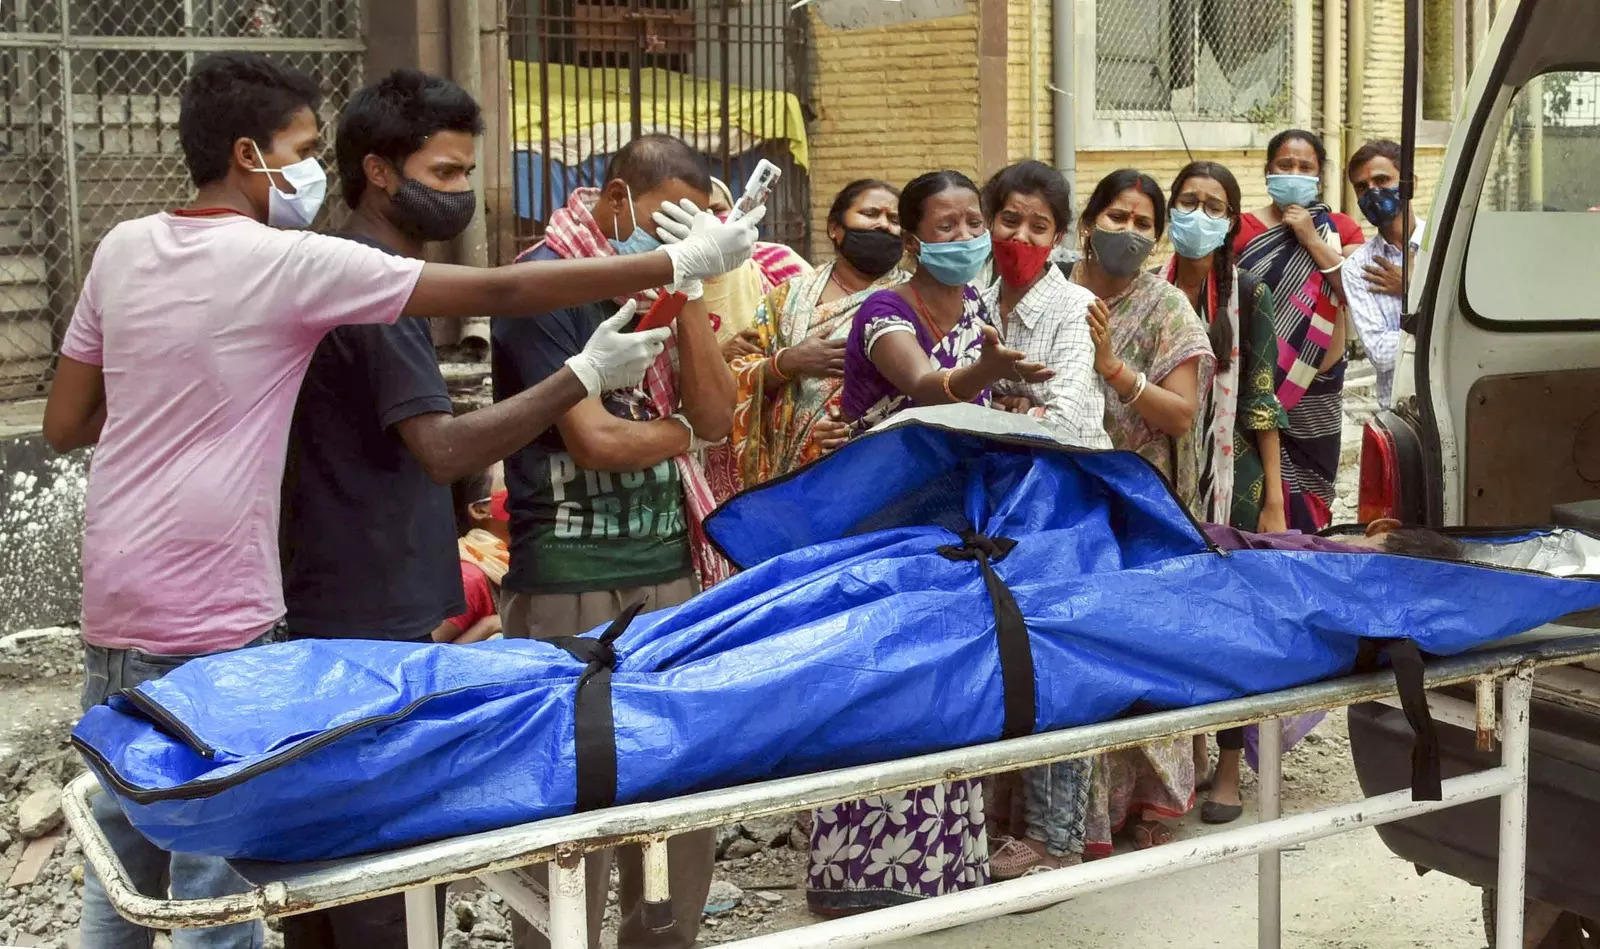 Maharashtra adds 1,096 earlier Covid deaths, toll now 83,777